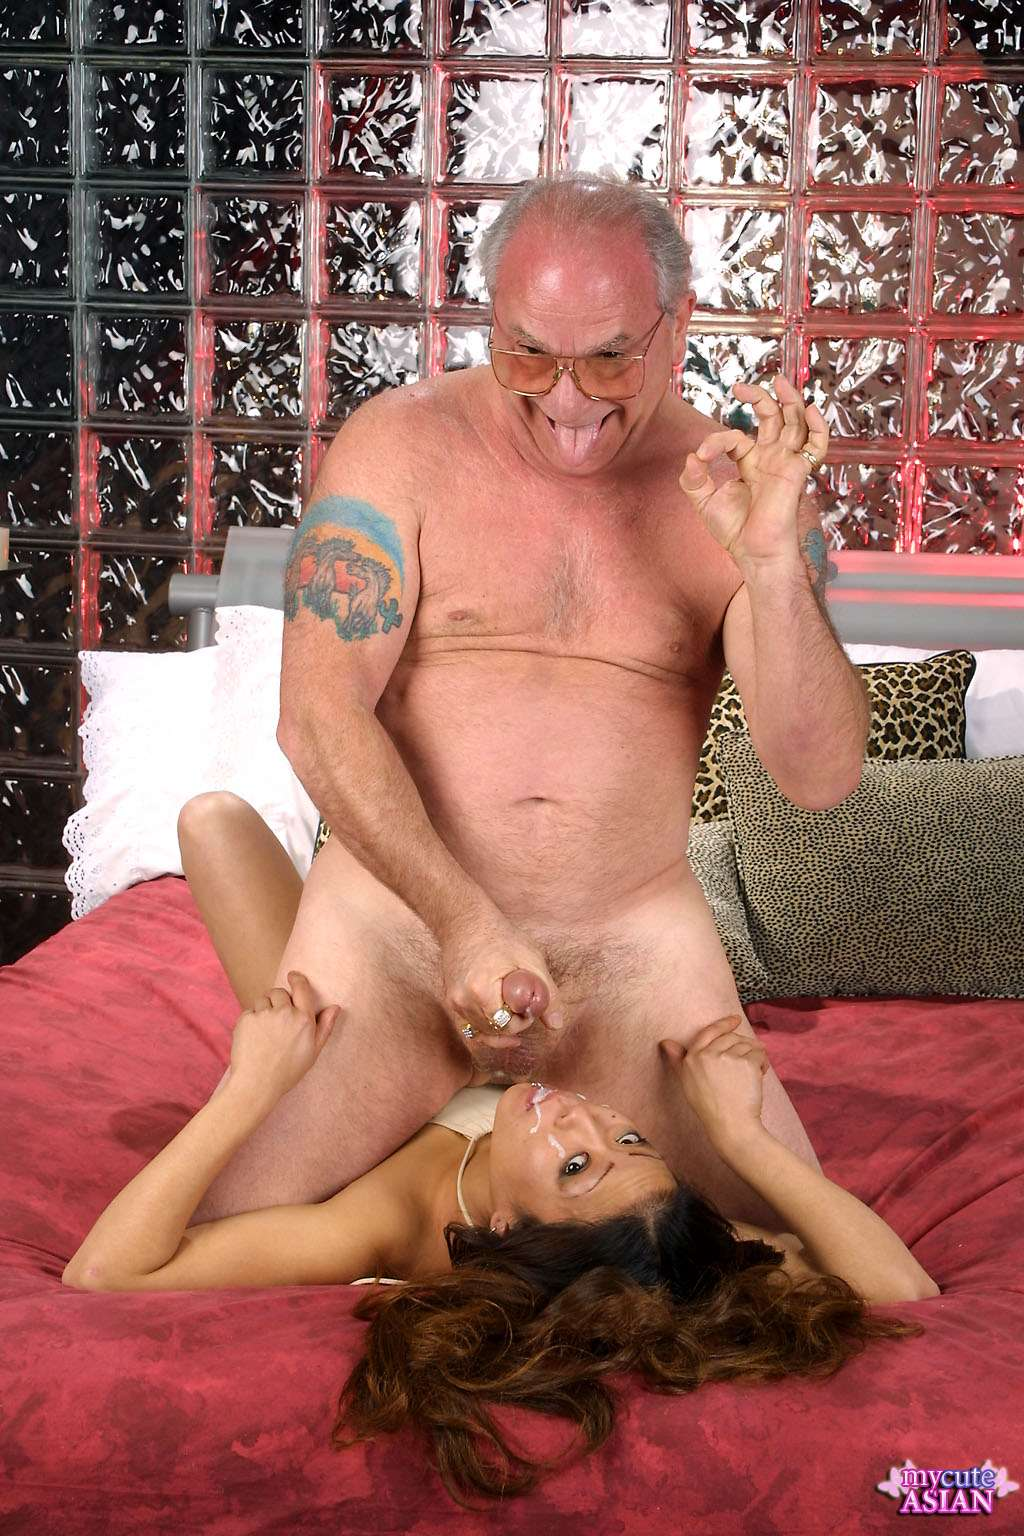 Blonde shemale fucks a big cock bald guy